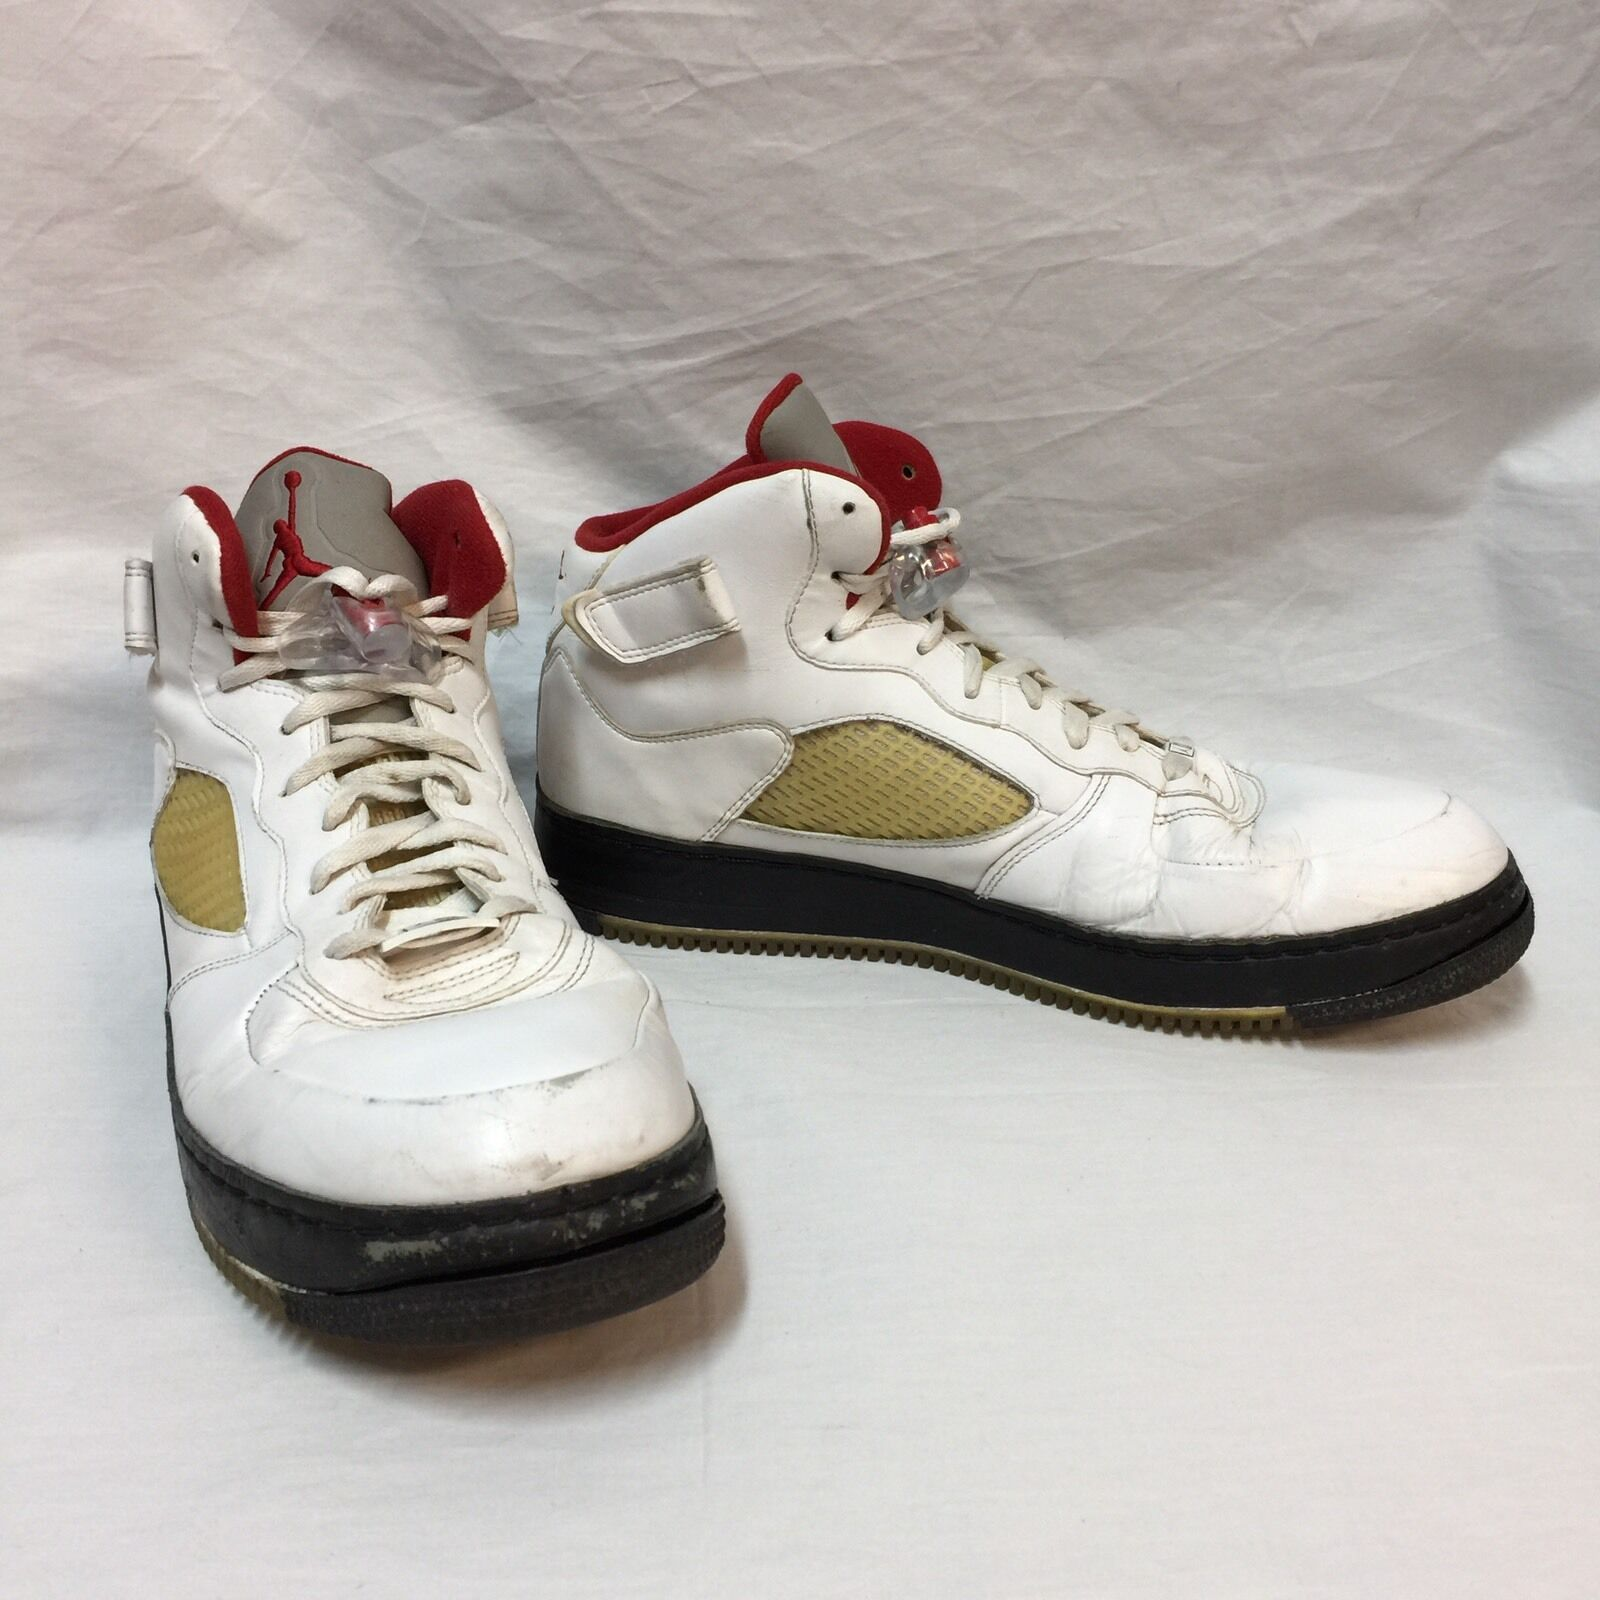 Nike Shoes 318608-161 Air Jordan Fusion White Varsity Red Black Comfortable The latest discount shoes for men and women